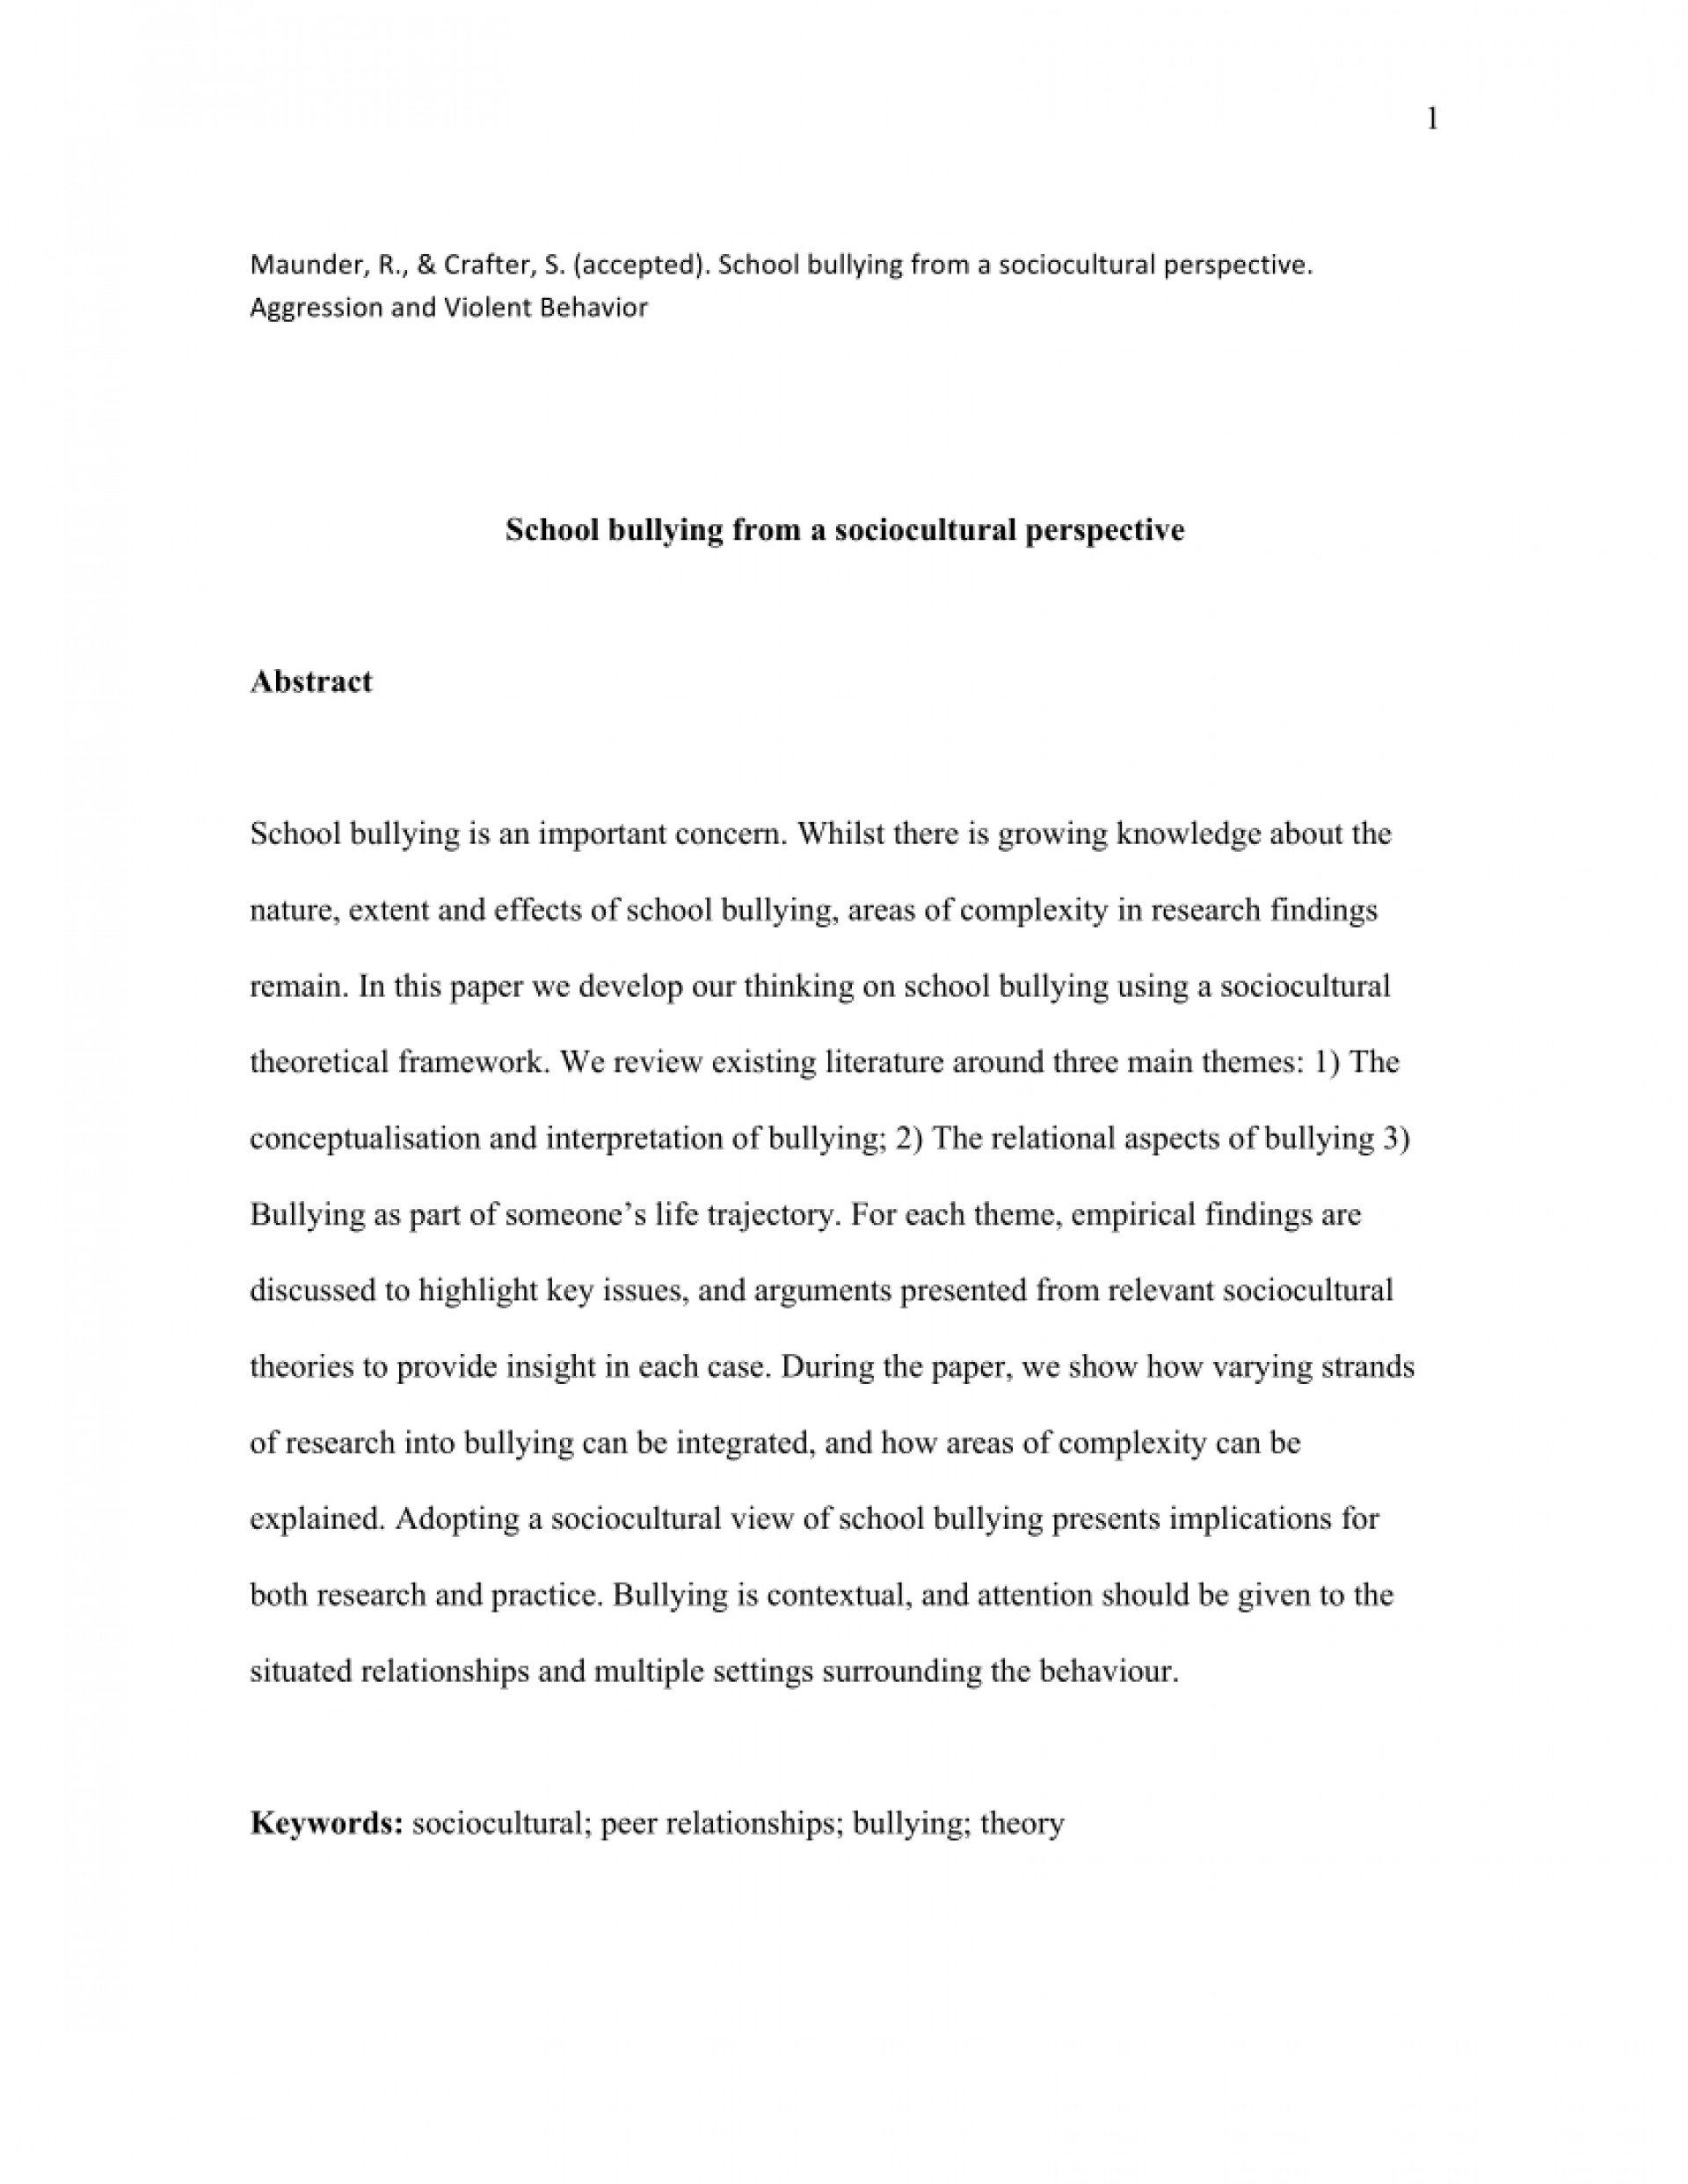 001 Research Paper Abstract About Bullying Formidable 1920